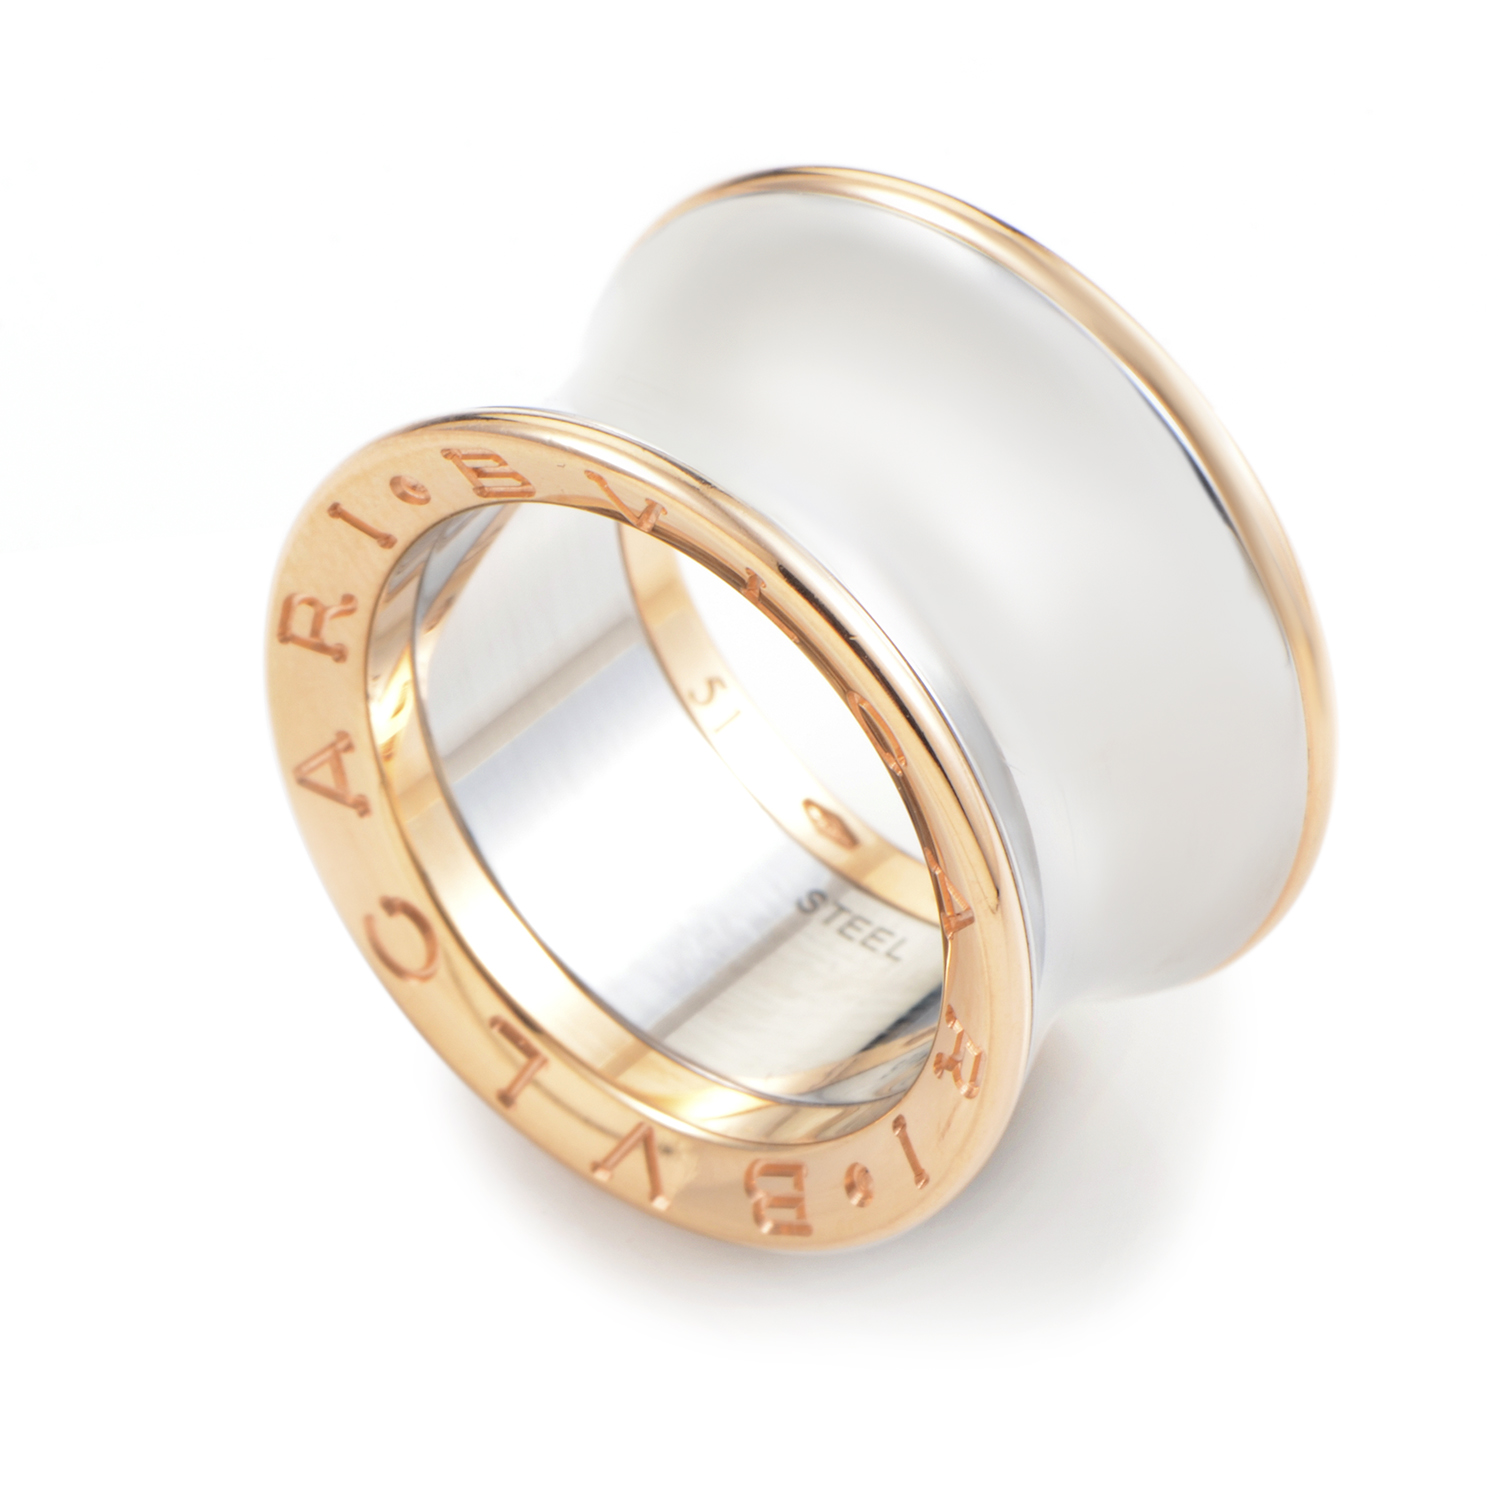 B.ZERO1 18K Rose Gold & Stainless Steel Ring A212301